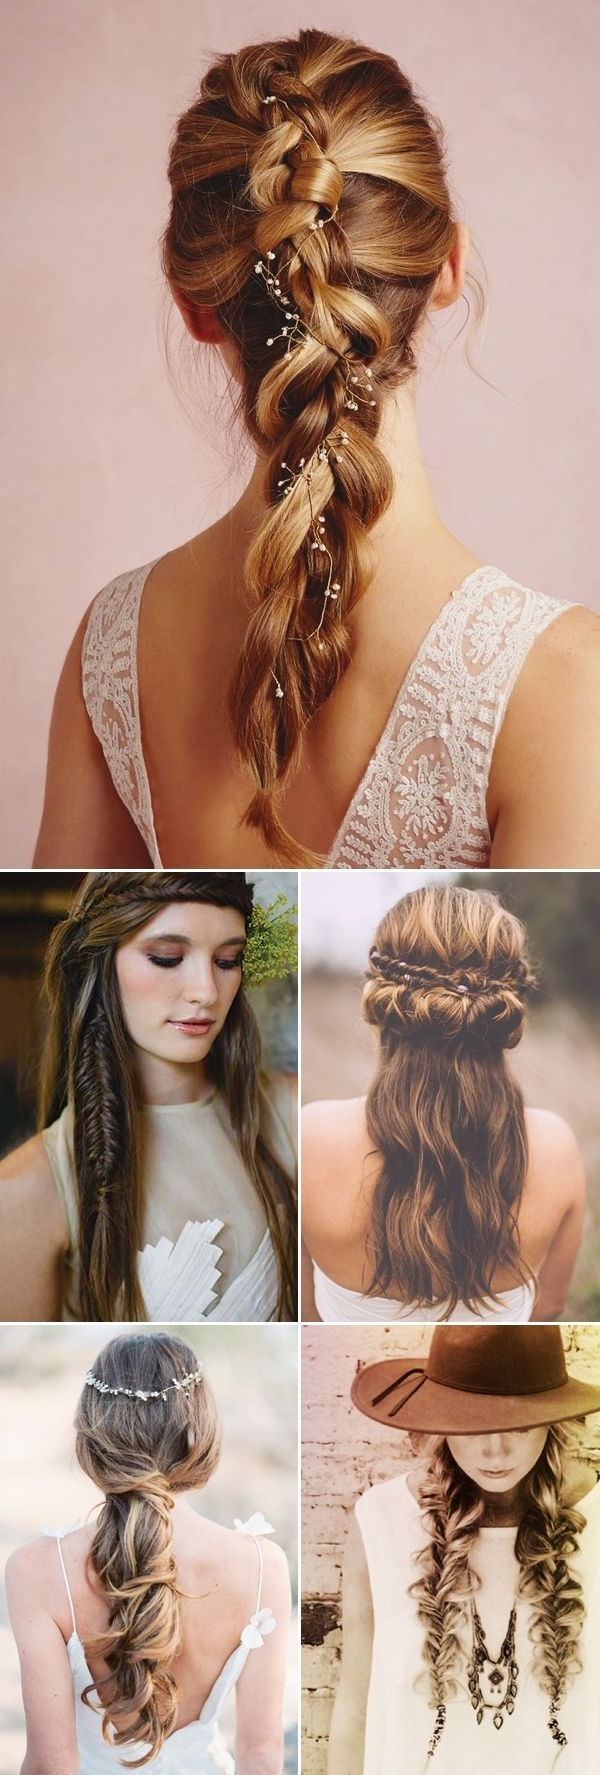 2018 Braided Hairstyles For Long Hair Within 28 Fancy Braided Hairstyles For Long Hair 2016 – Pretty Designs (View 12 of 15)